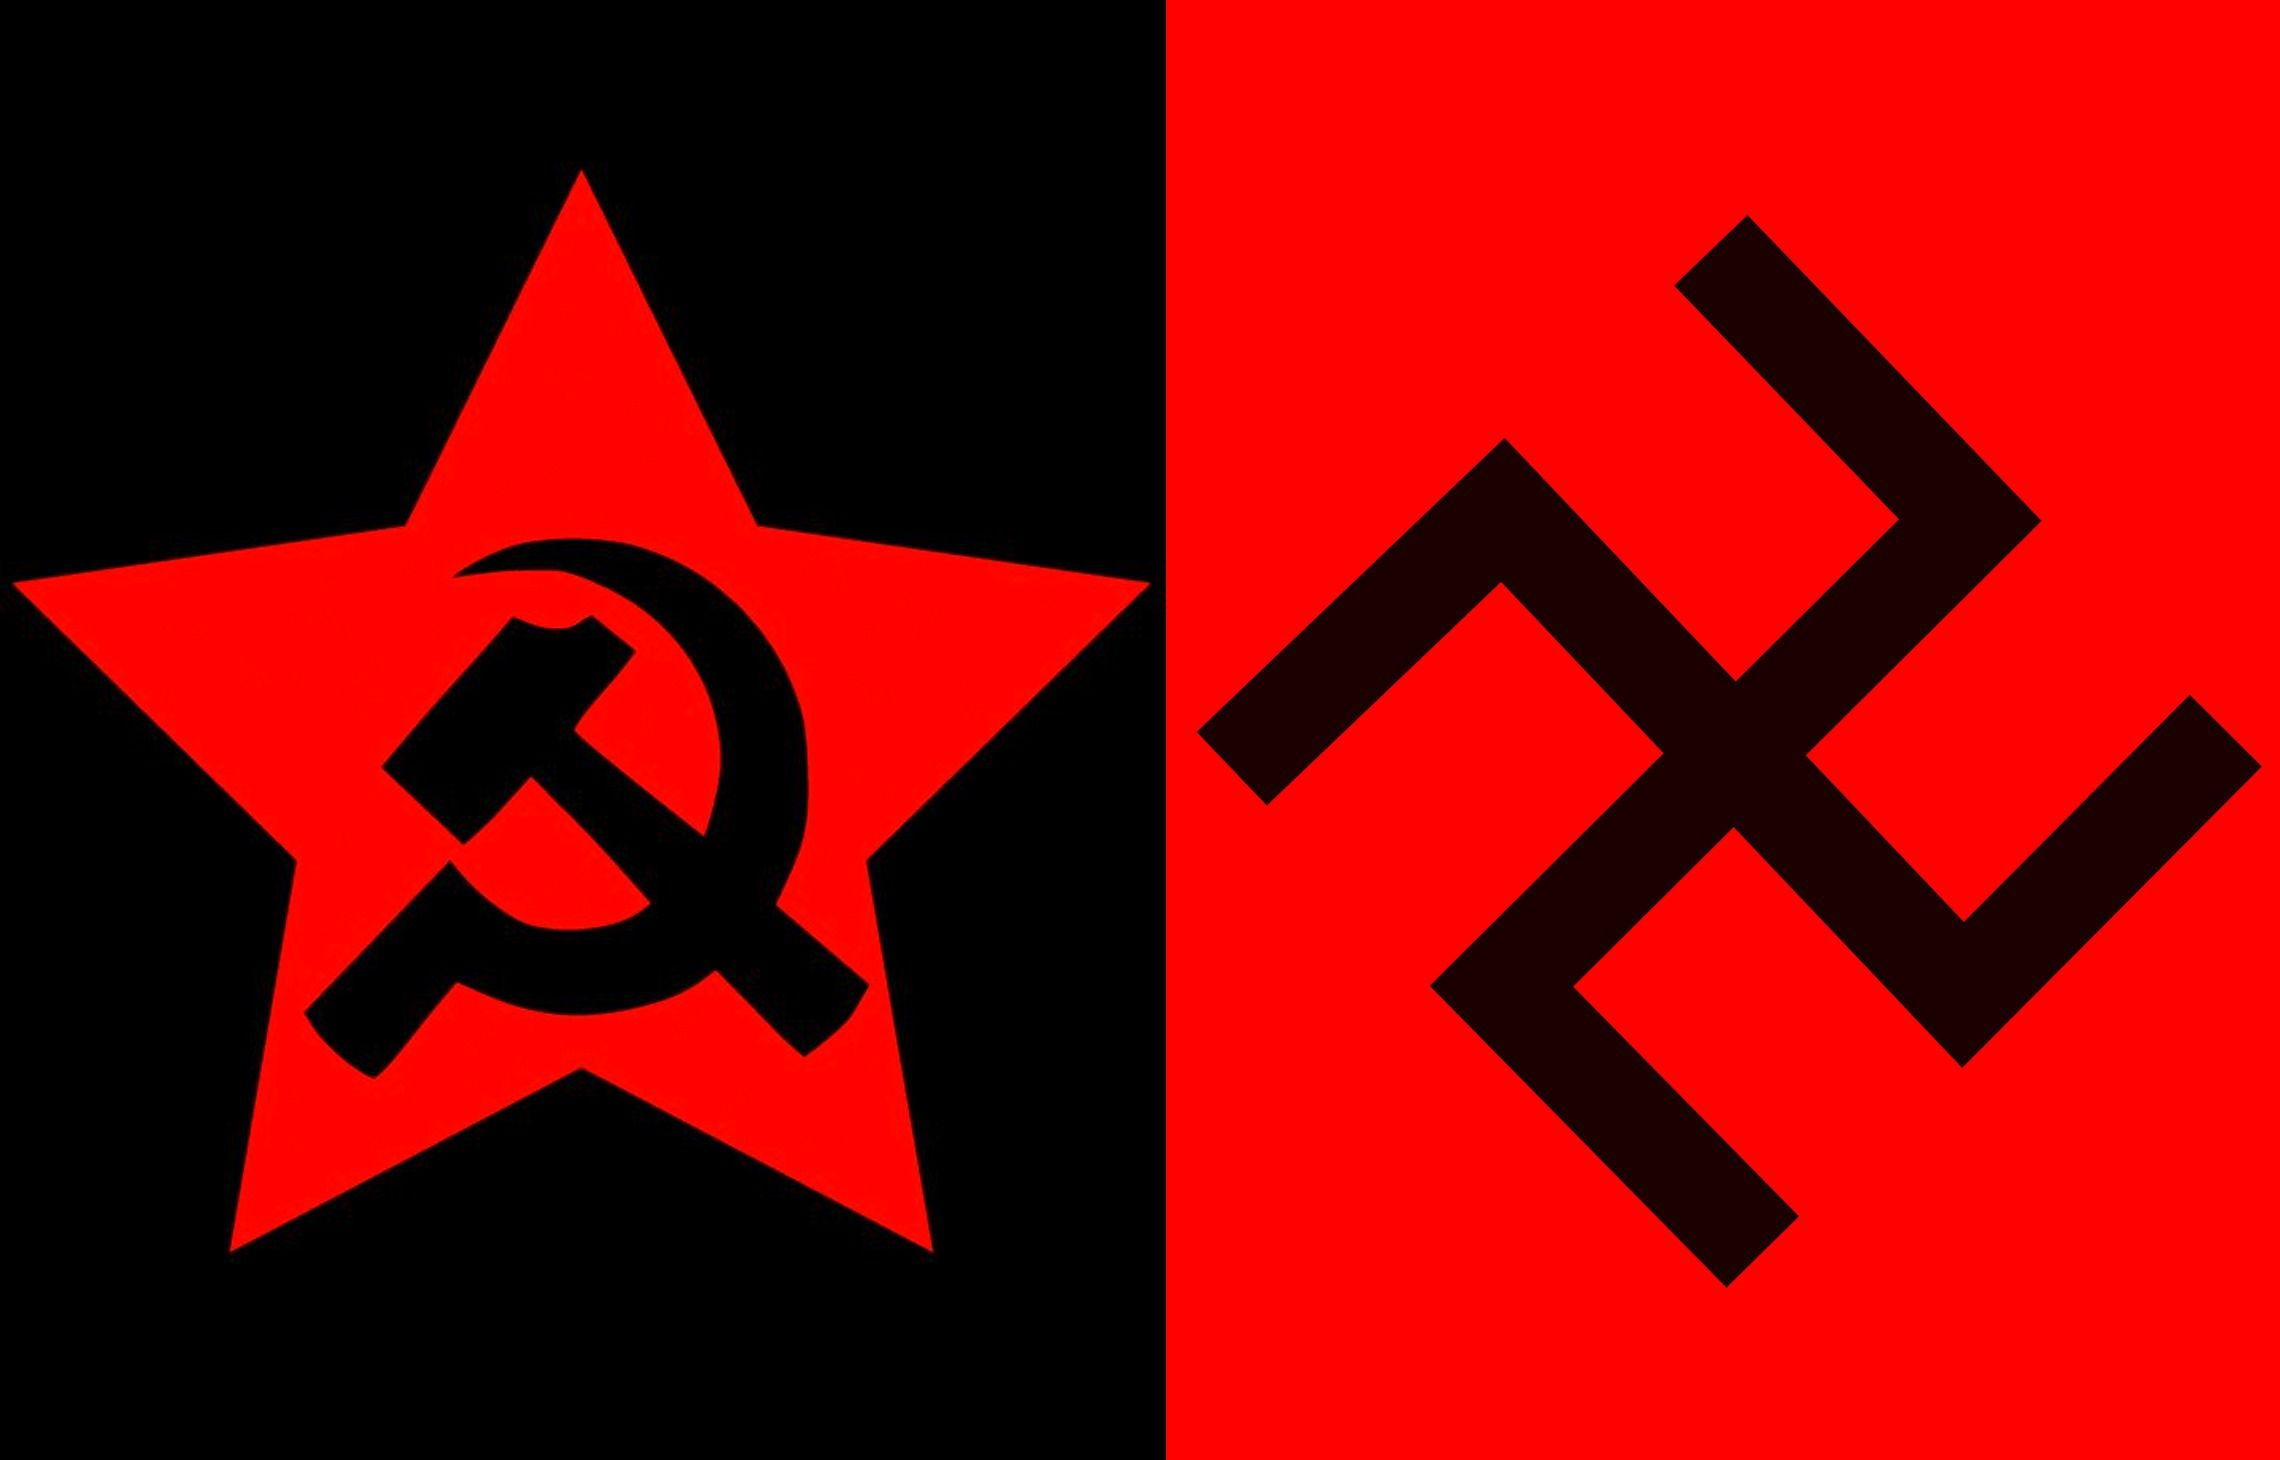 hitler s nazi germany vs stalin s communist Hitler particularly disliked the communist party in germany the enabling act made hitler the all-powerful fuhrer of germany the law against the formation of parties declared the nazi party the only political party in germany it was an offence to belong to another party all other parties were banned, and their leaders.